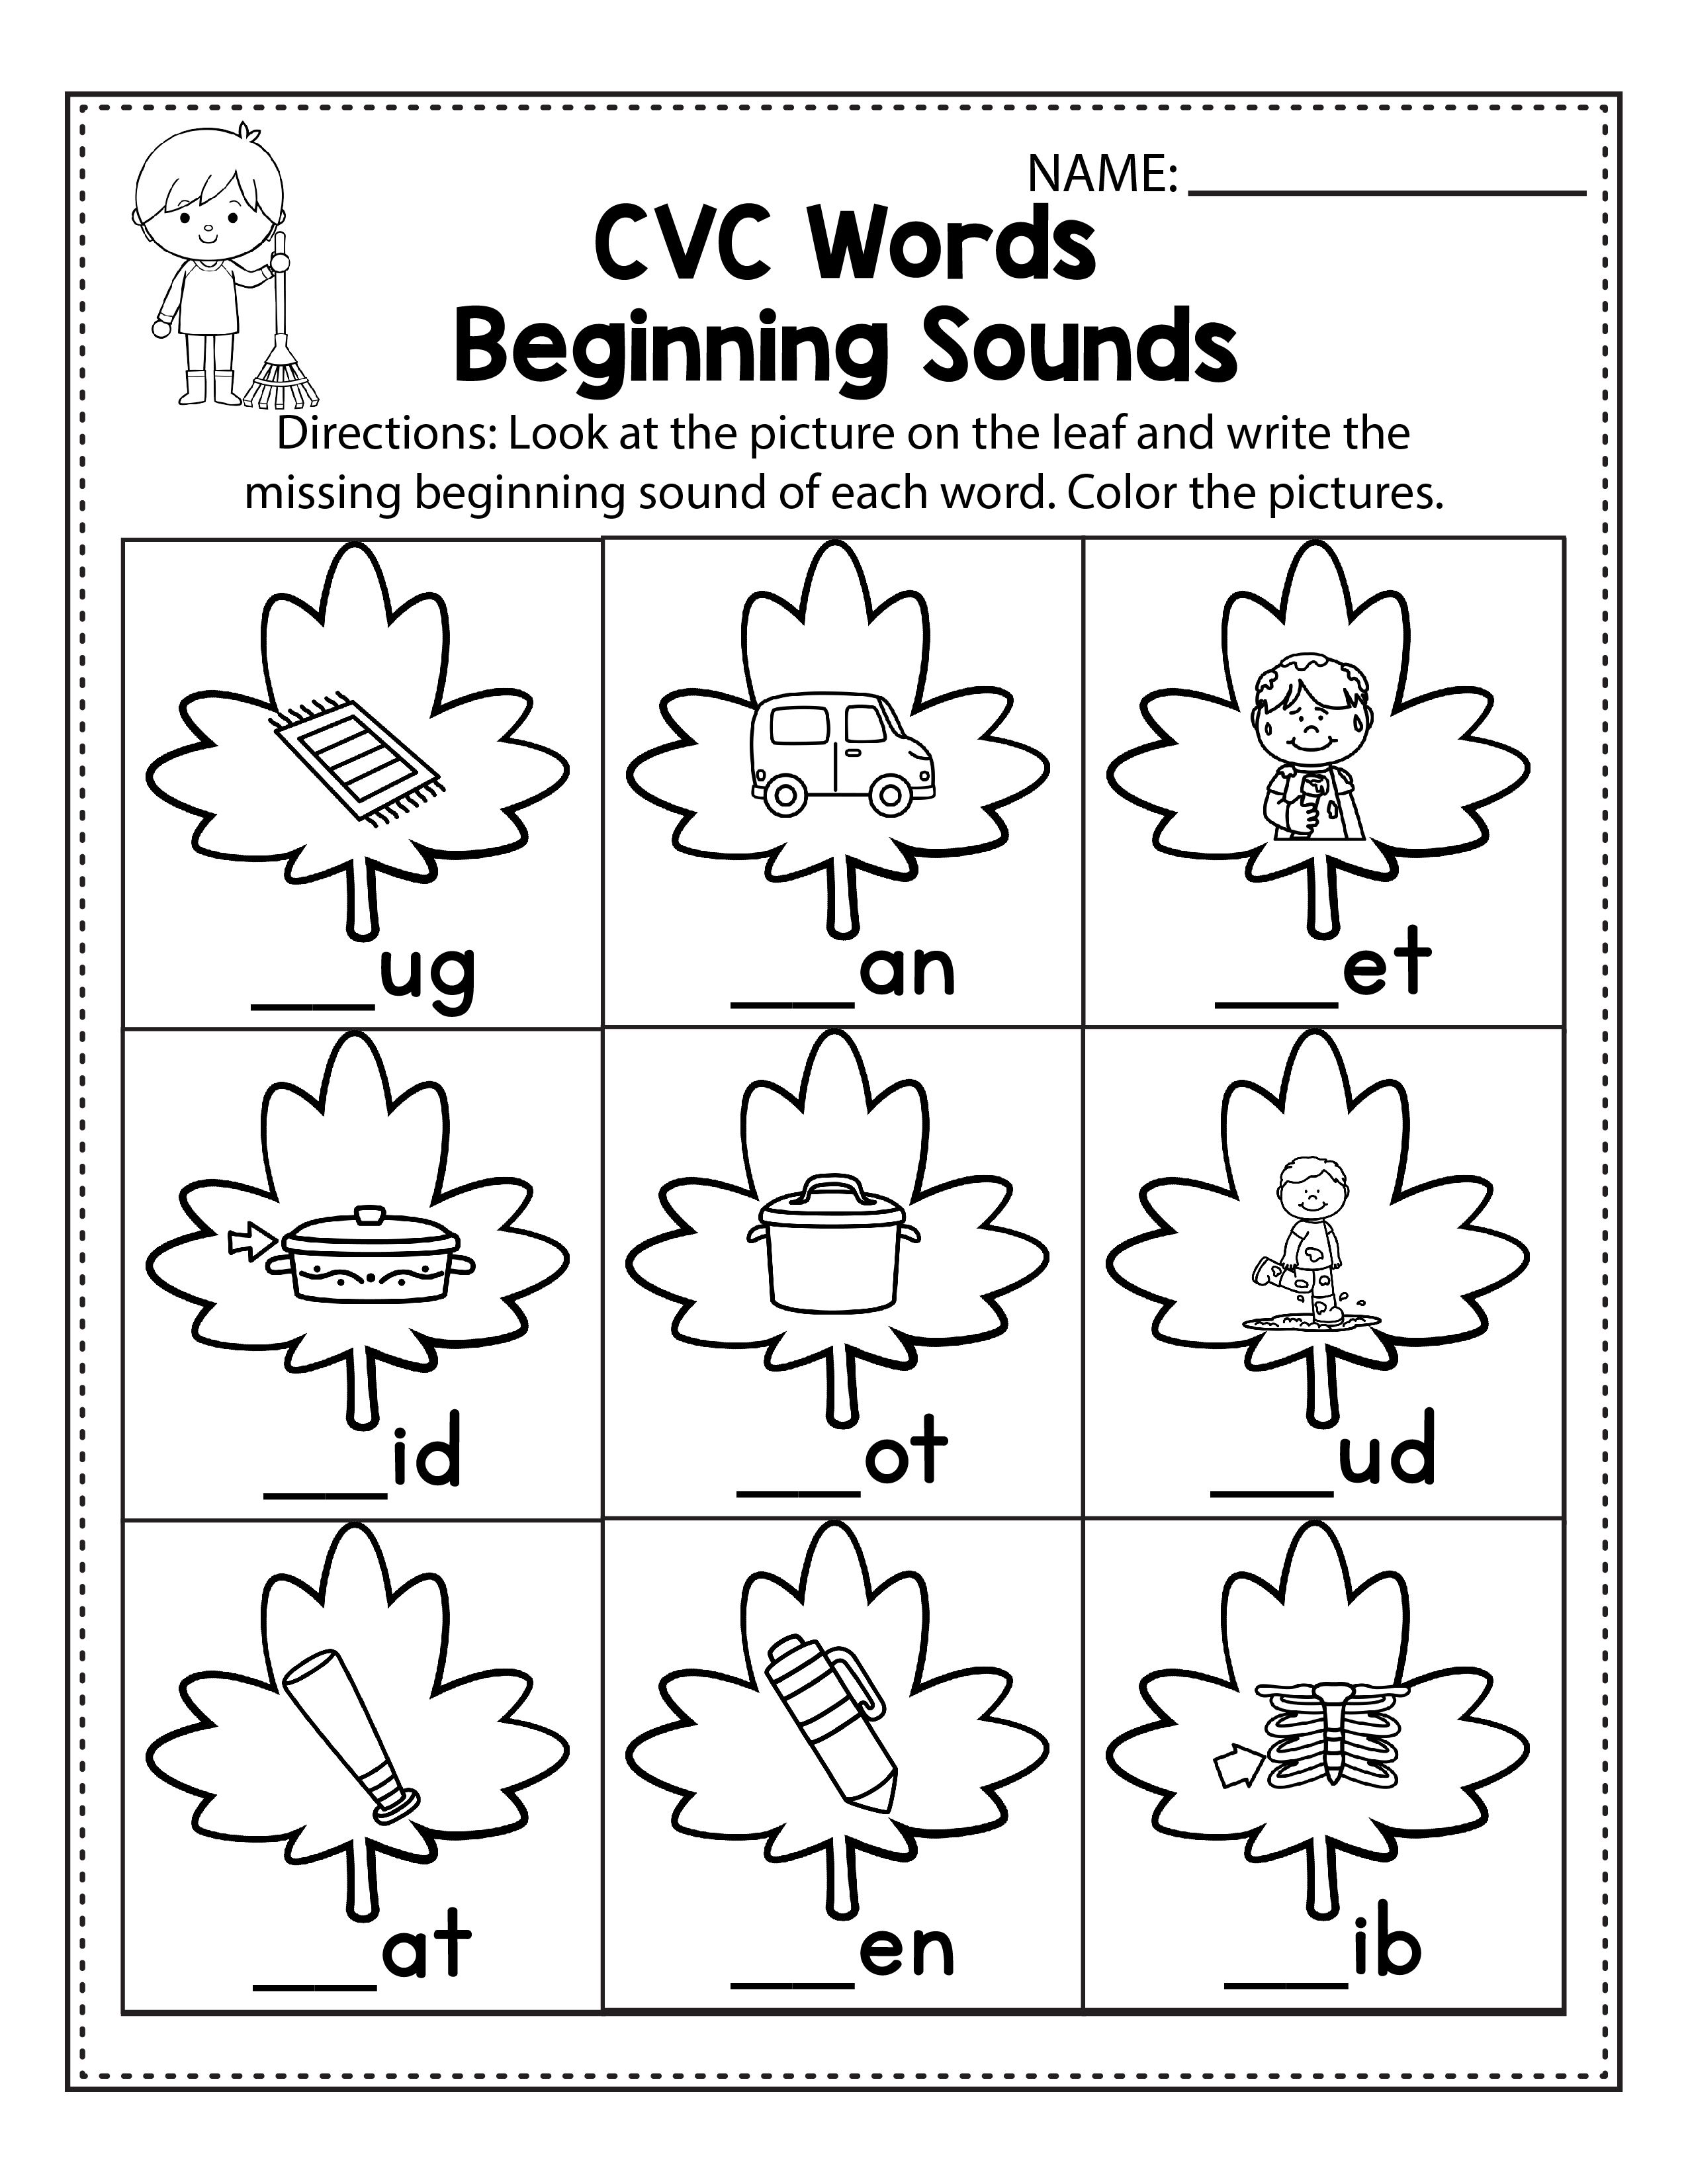 Free Fall Worksheets For Kindergarten In 2020 Fall Kindergarten Activities Free Kindergarten Worksheets Kindergarten Worksheets [ 3301 x 2551 Pixel ]